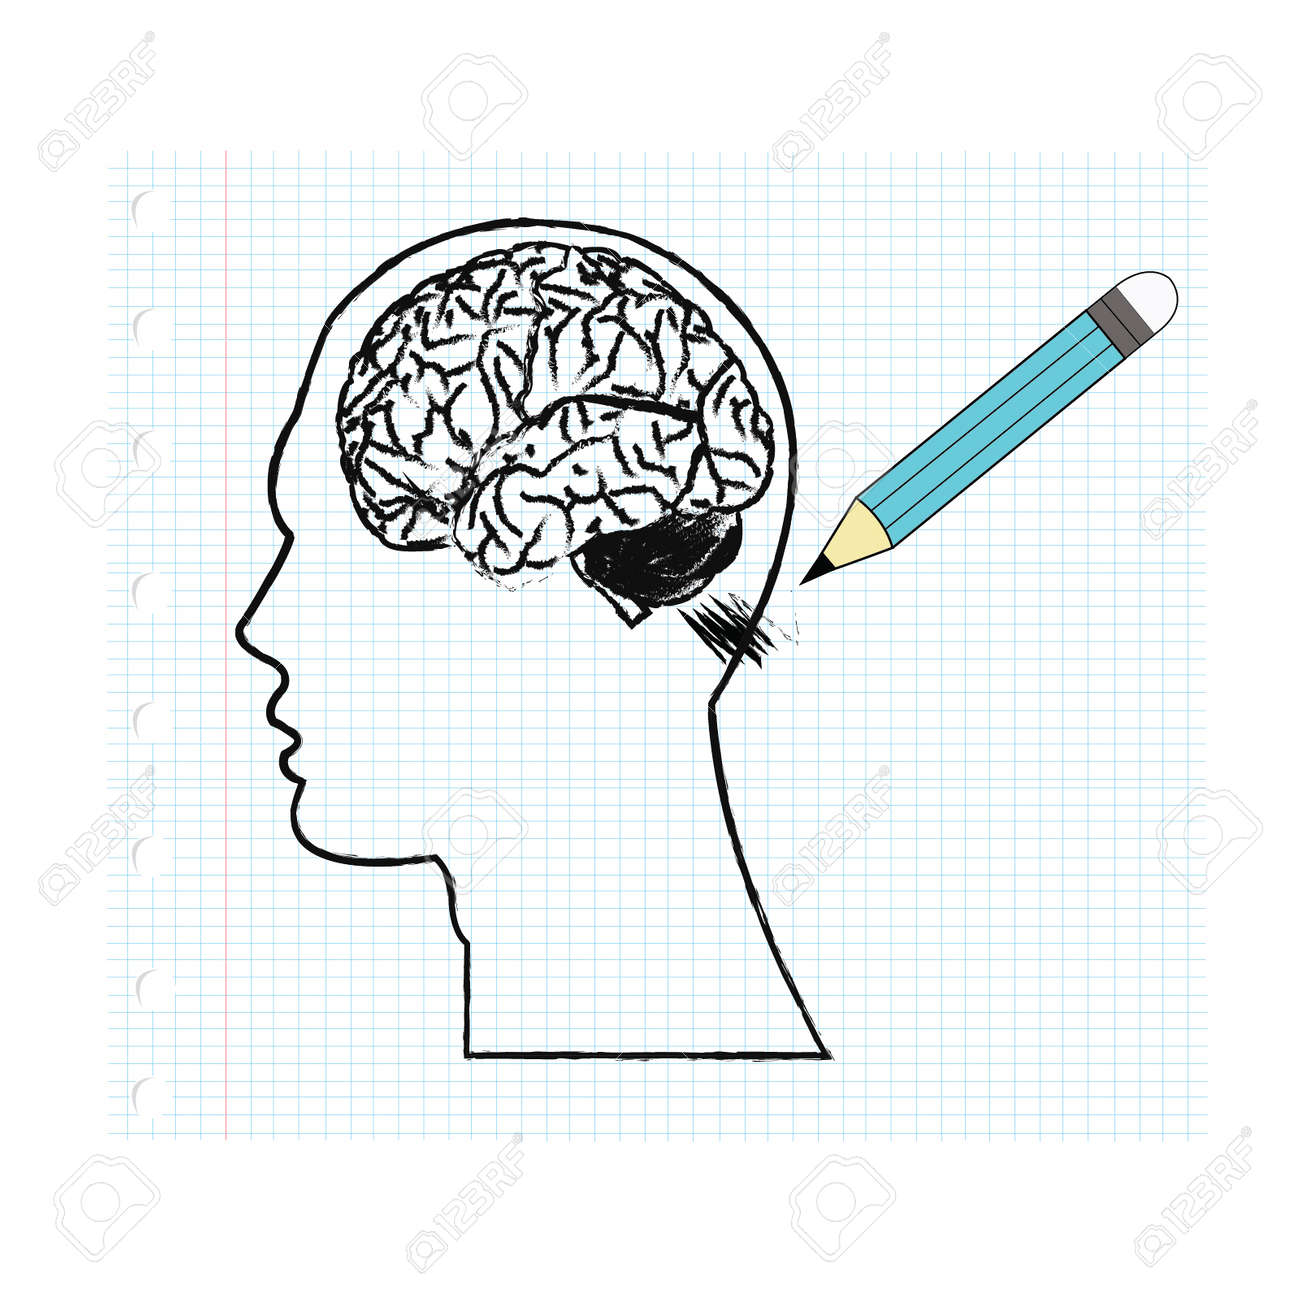 Paper With A Pencil Drawing Of The Human Brain Royalty Free Cliparts